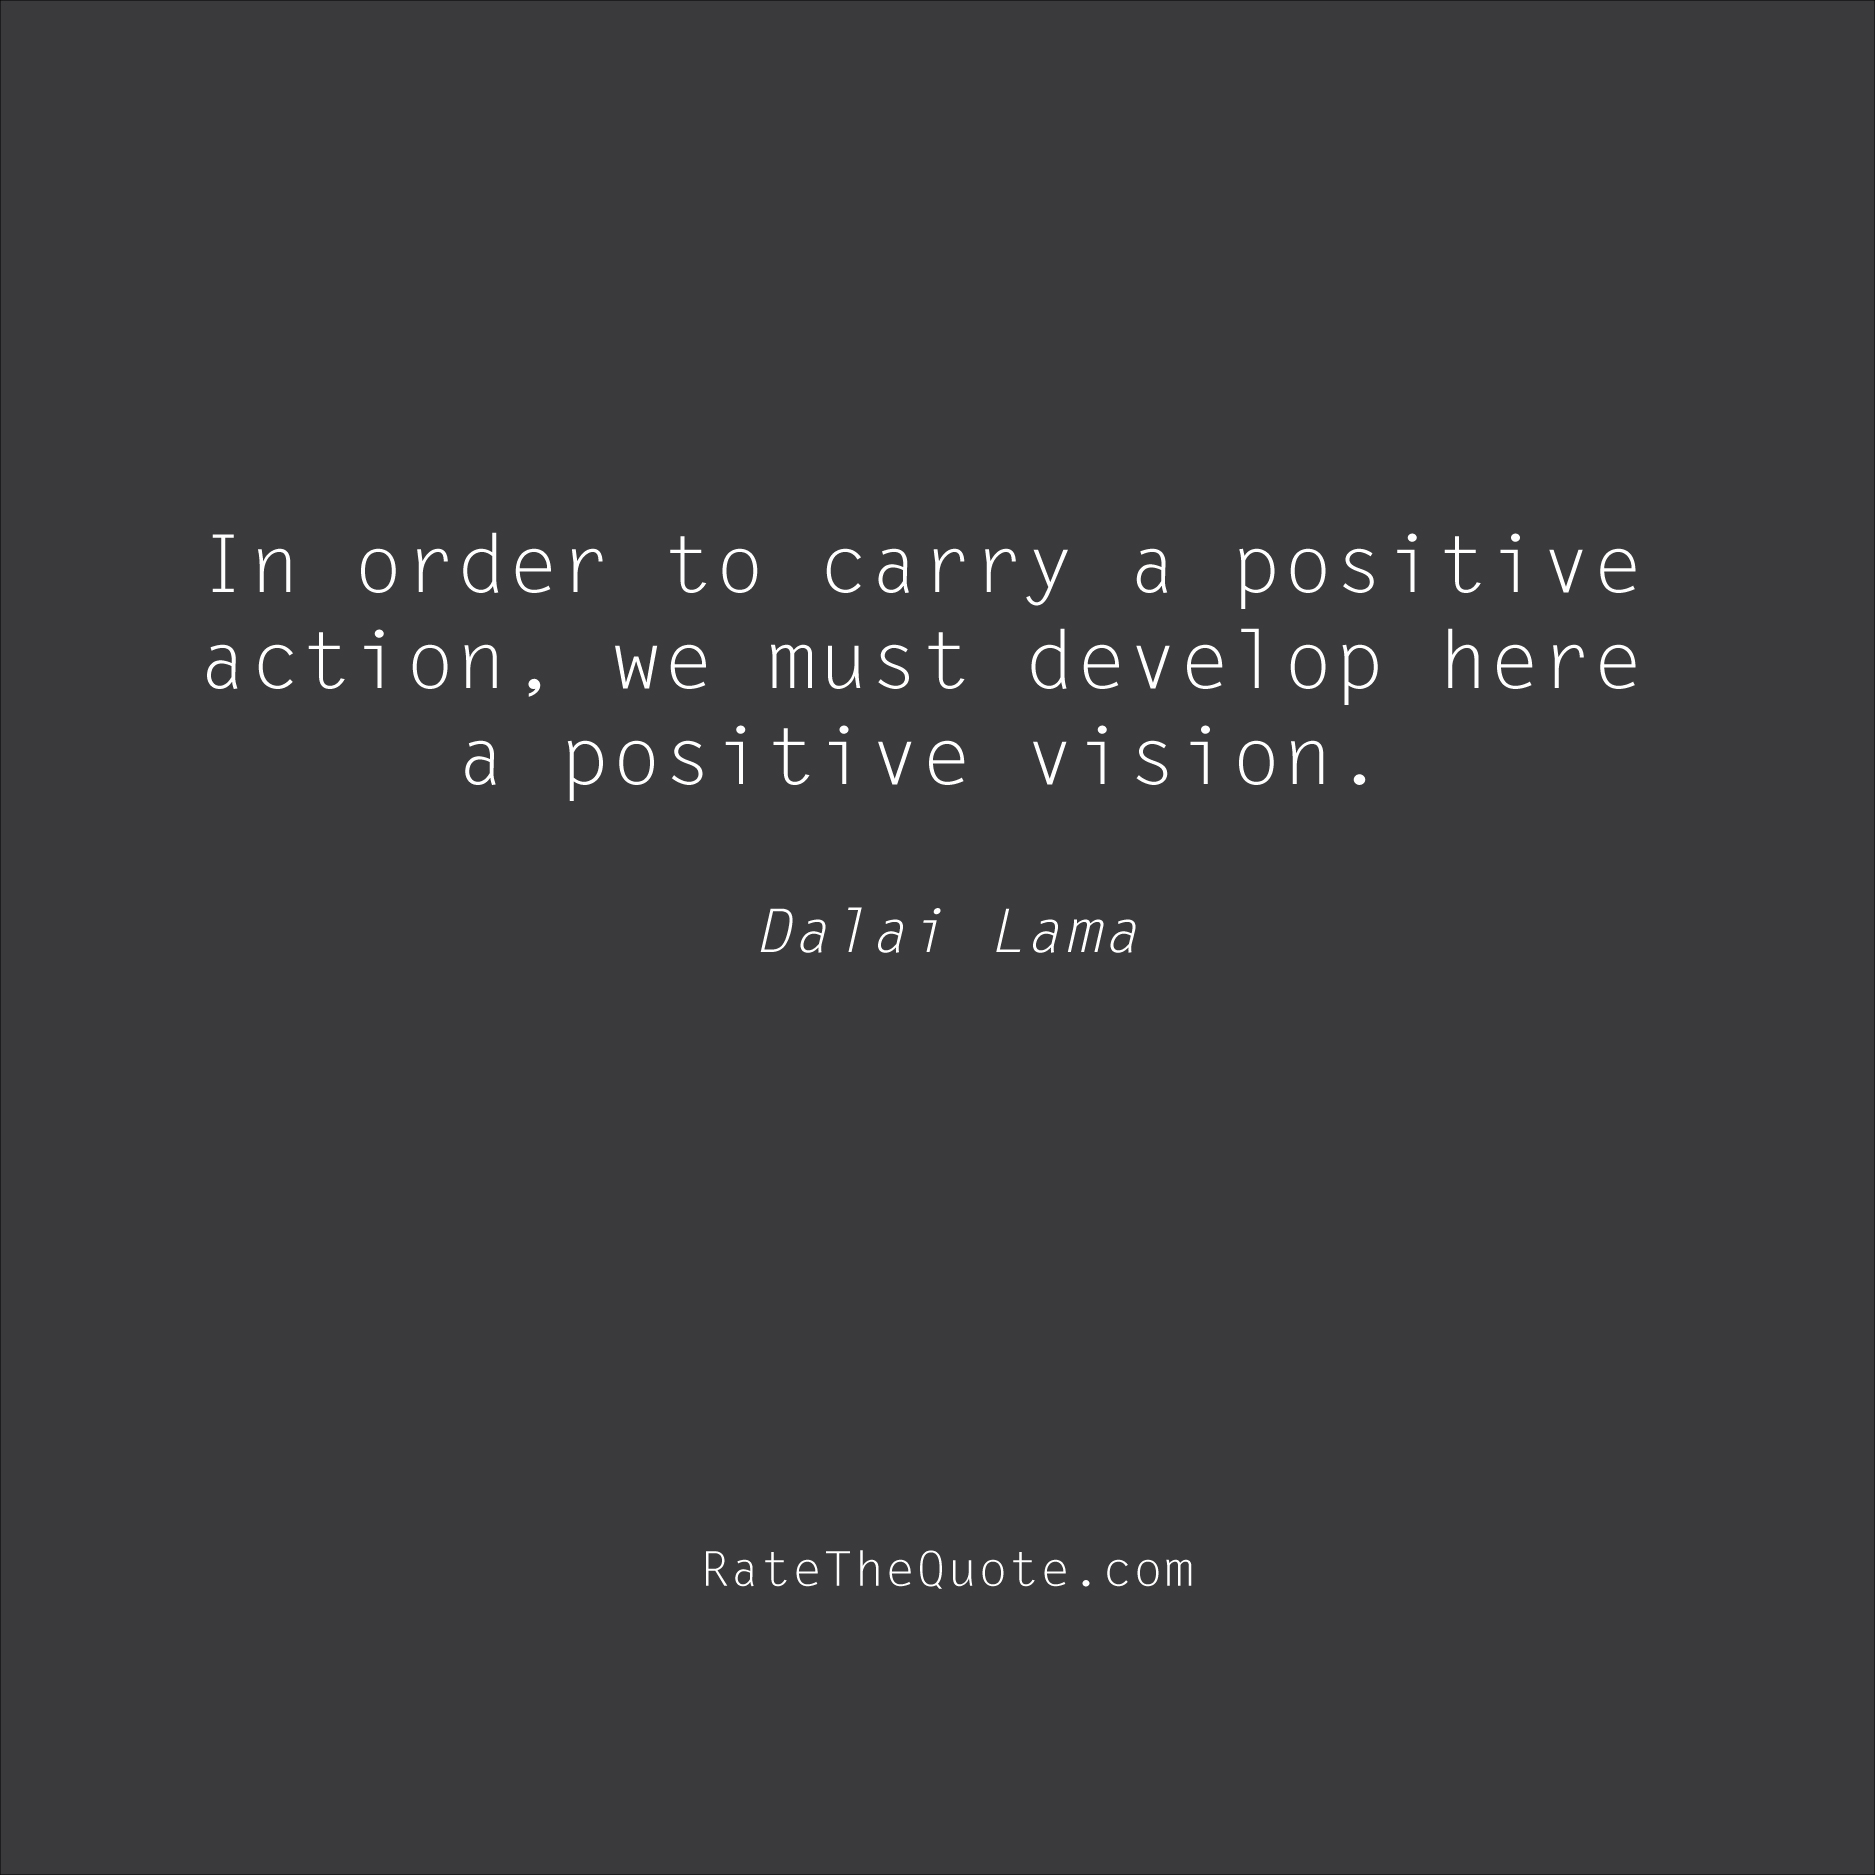 Positive Quotes In order to carry a positive action, we must develop here a positive vision. Dalai Lama